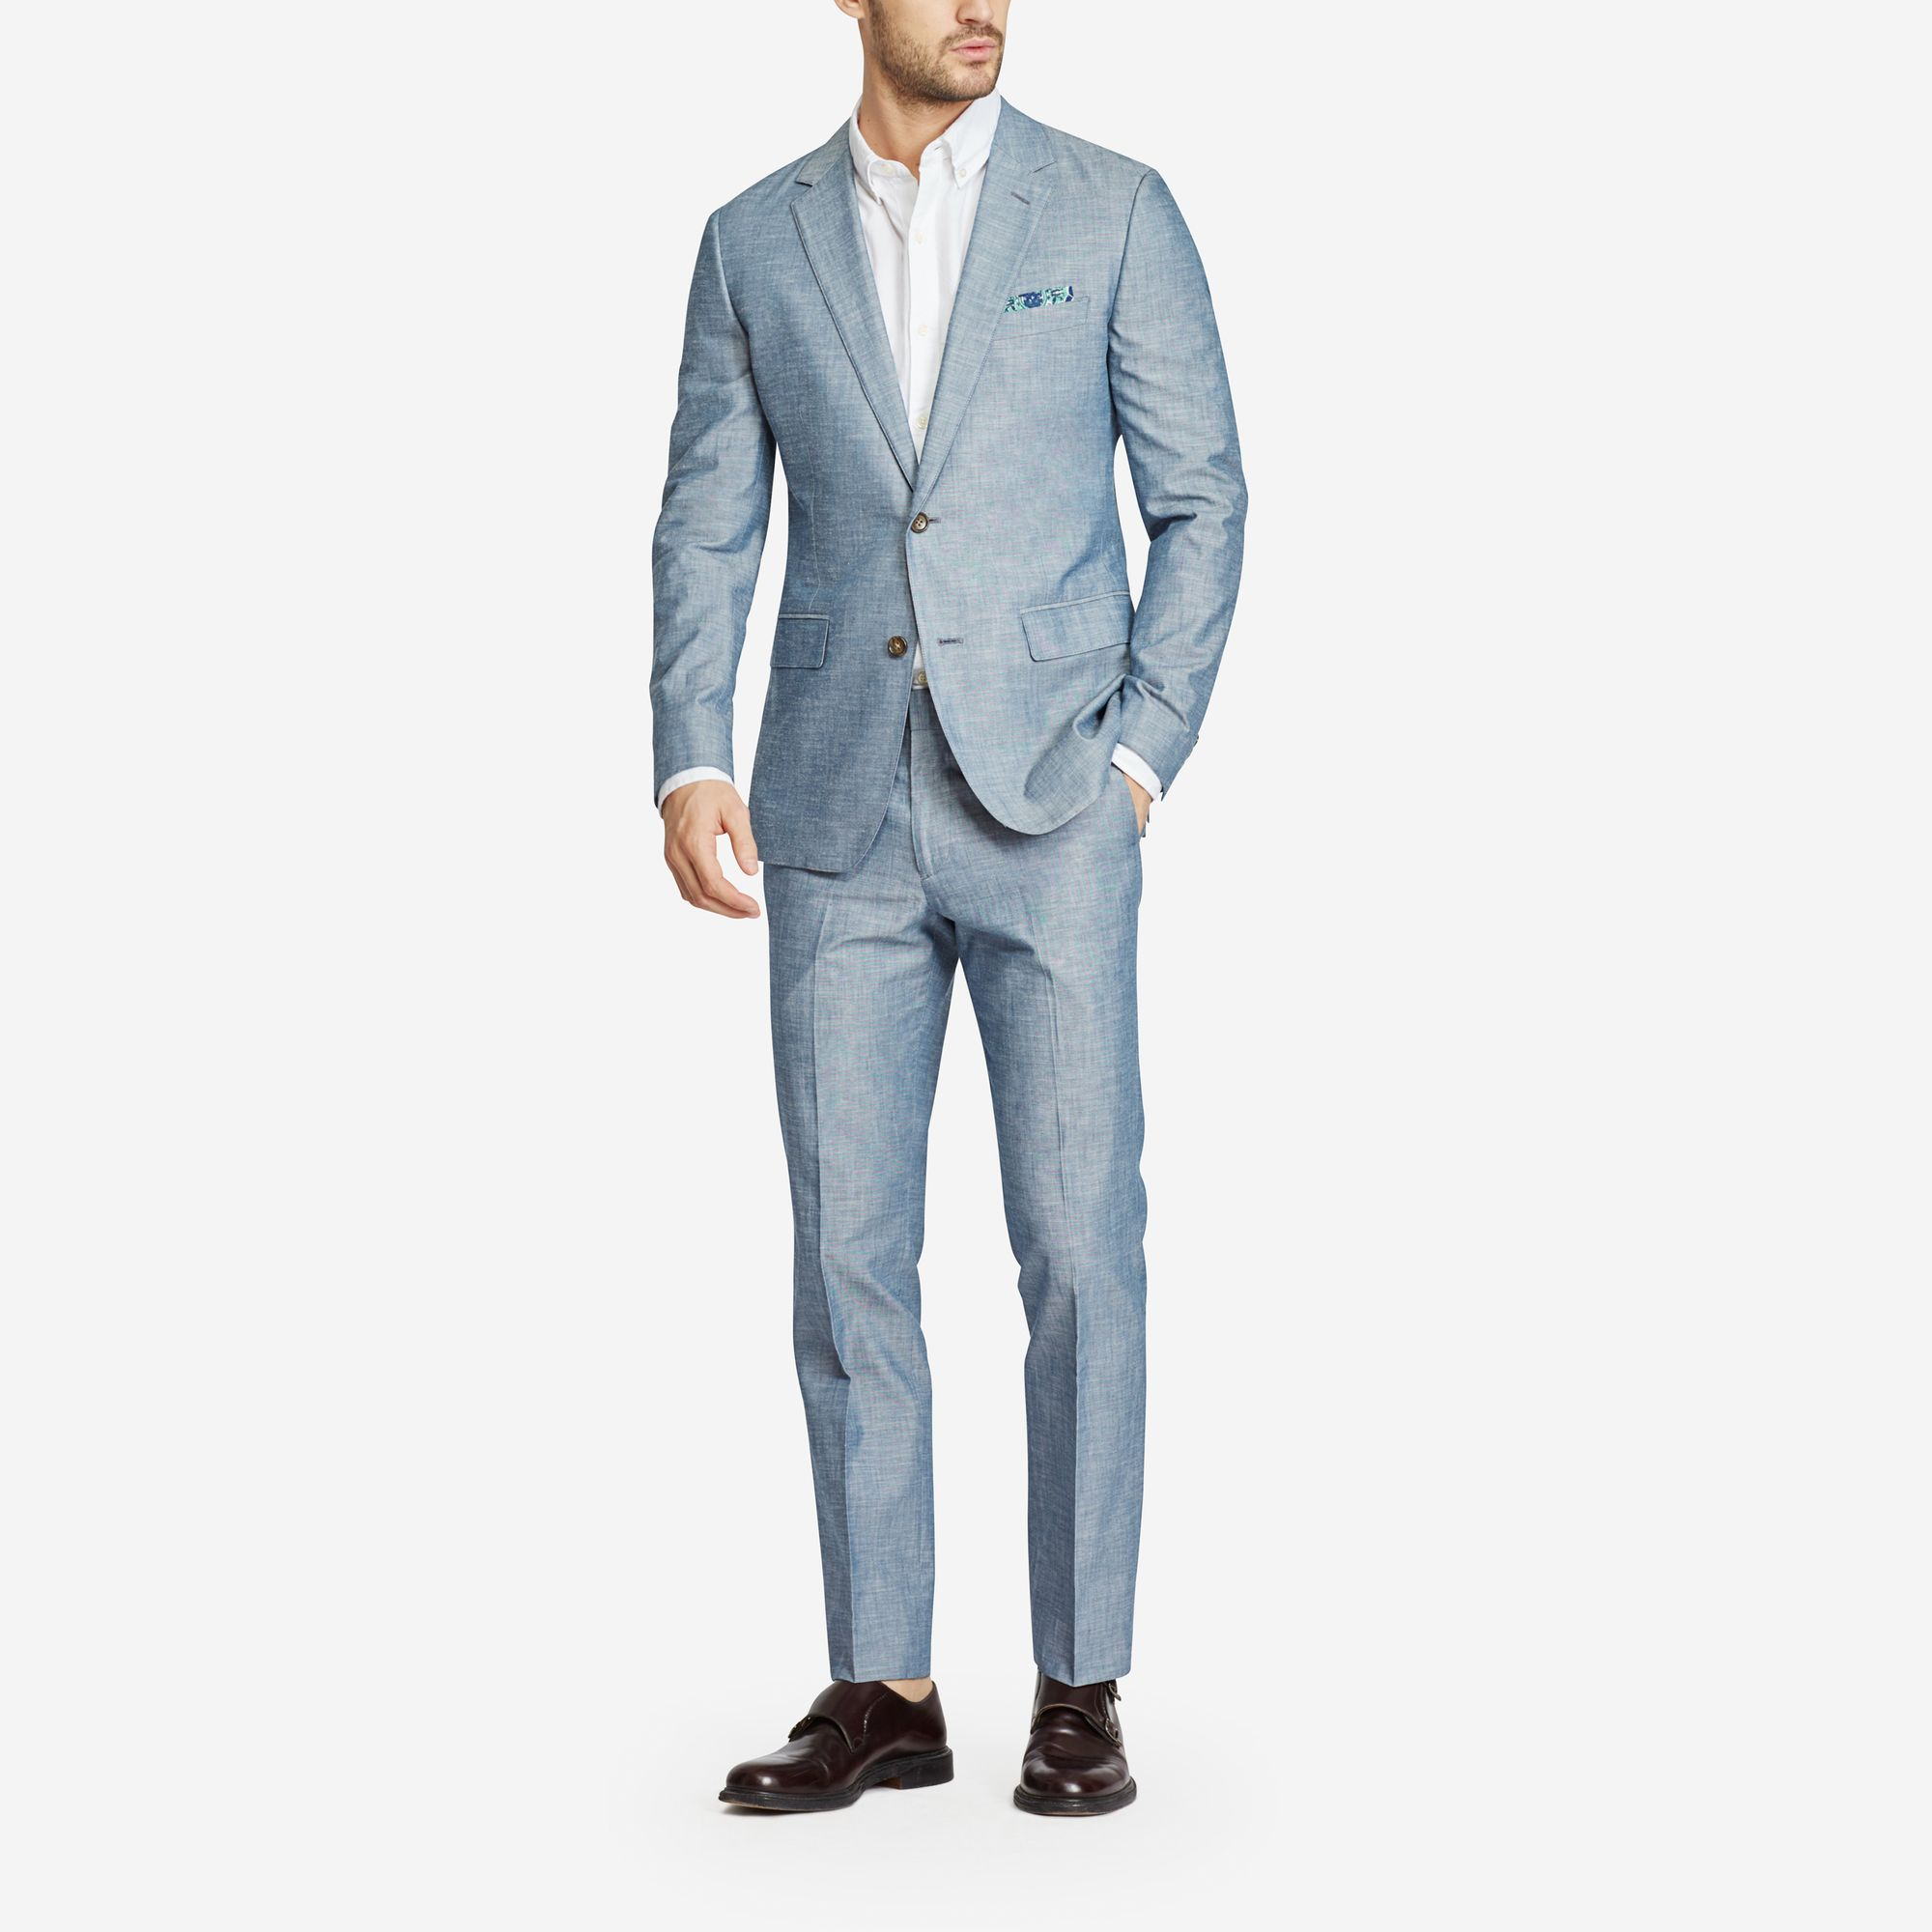 Bonobos Foundation Chambray Suit  Classic construction, the perfect fit, and beautiful details—if you only get one suit, make it the Foundation. Your go-to suit in breathable cotton for warmer weather. - © Bonobos